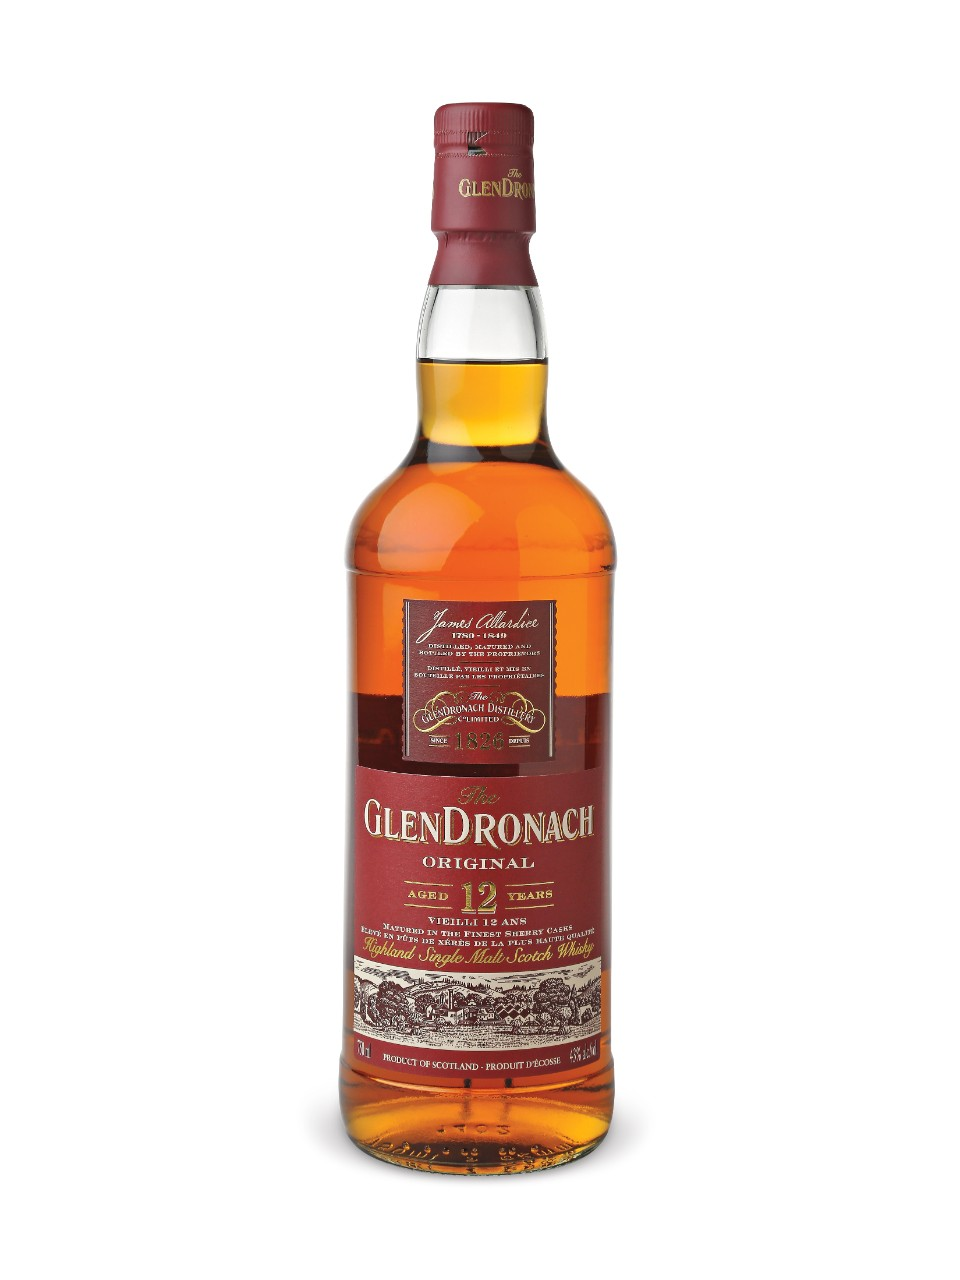 Glendronach 12 Years Old Single Highland Malt Scotch Whisky